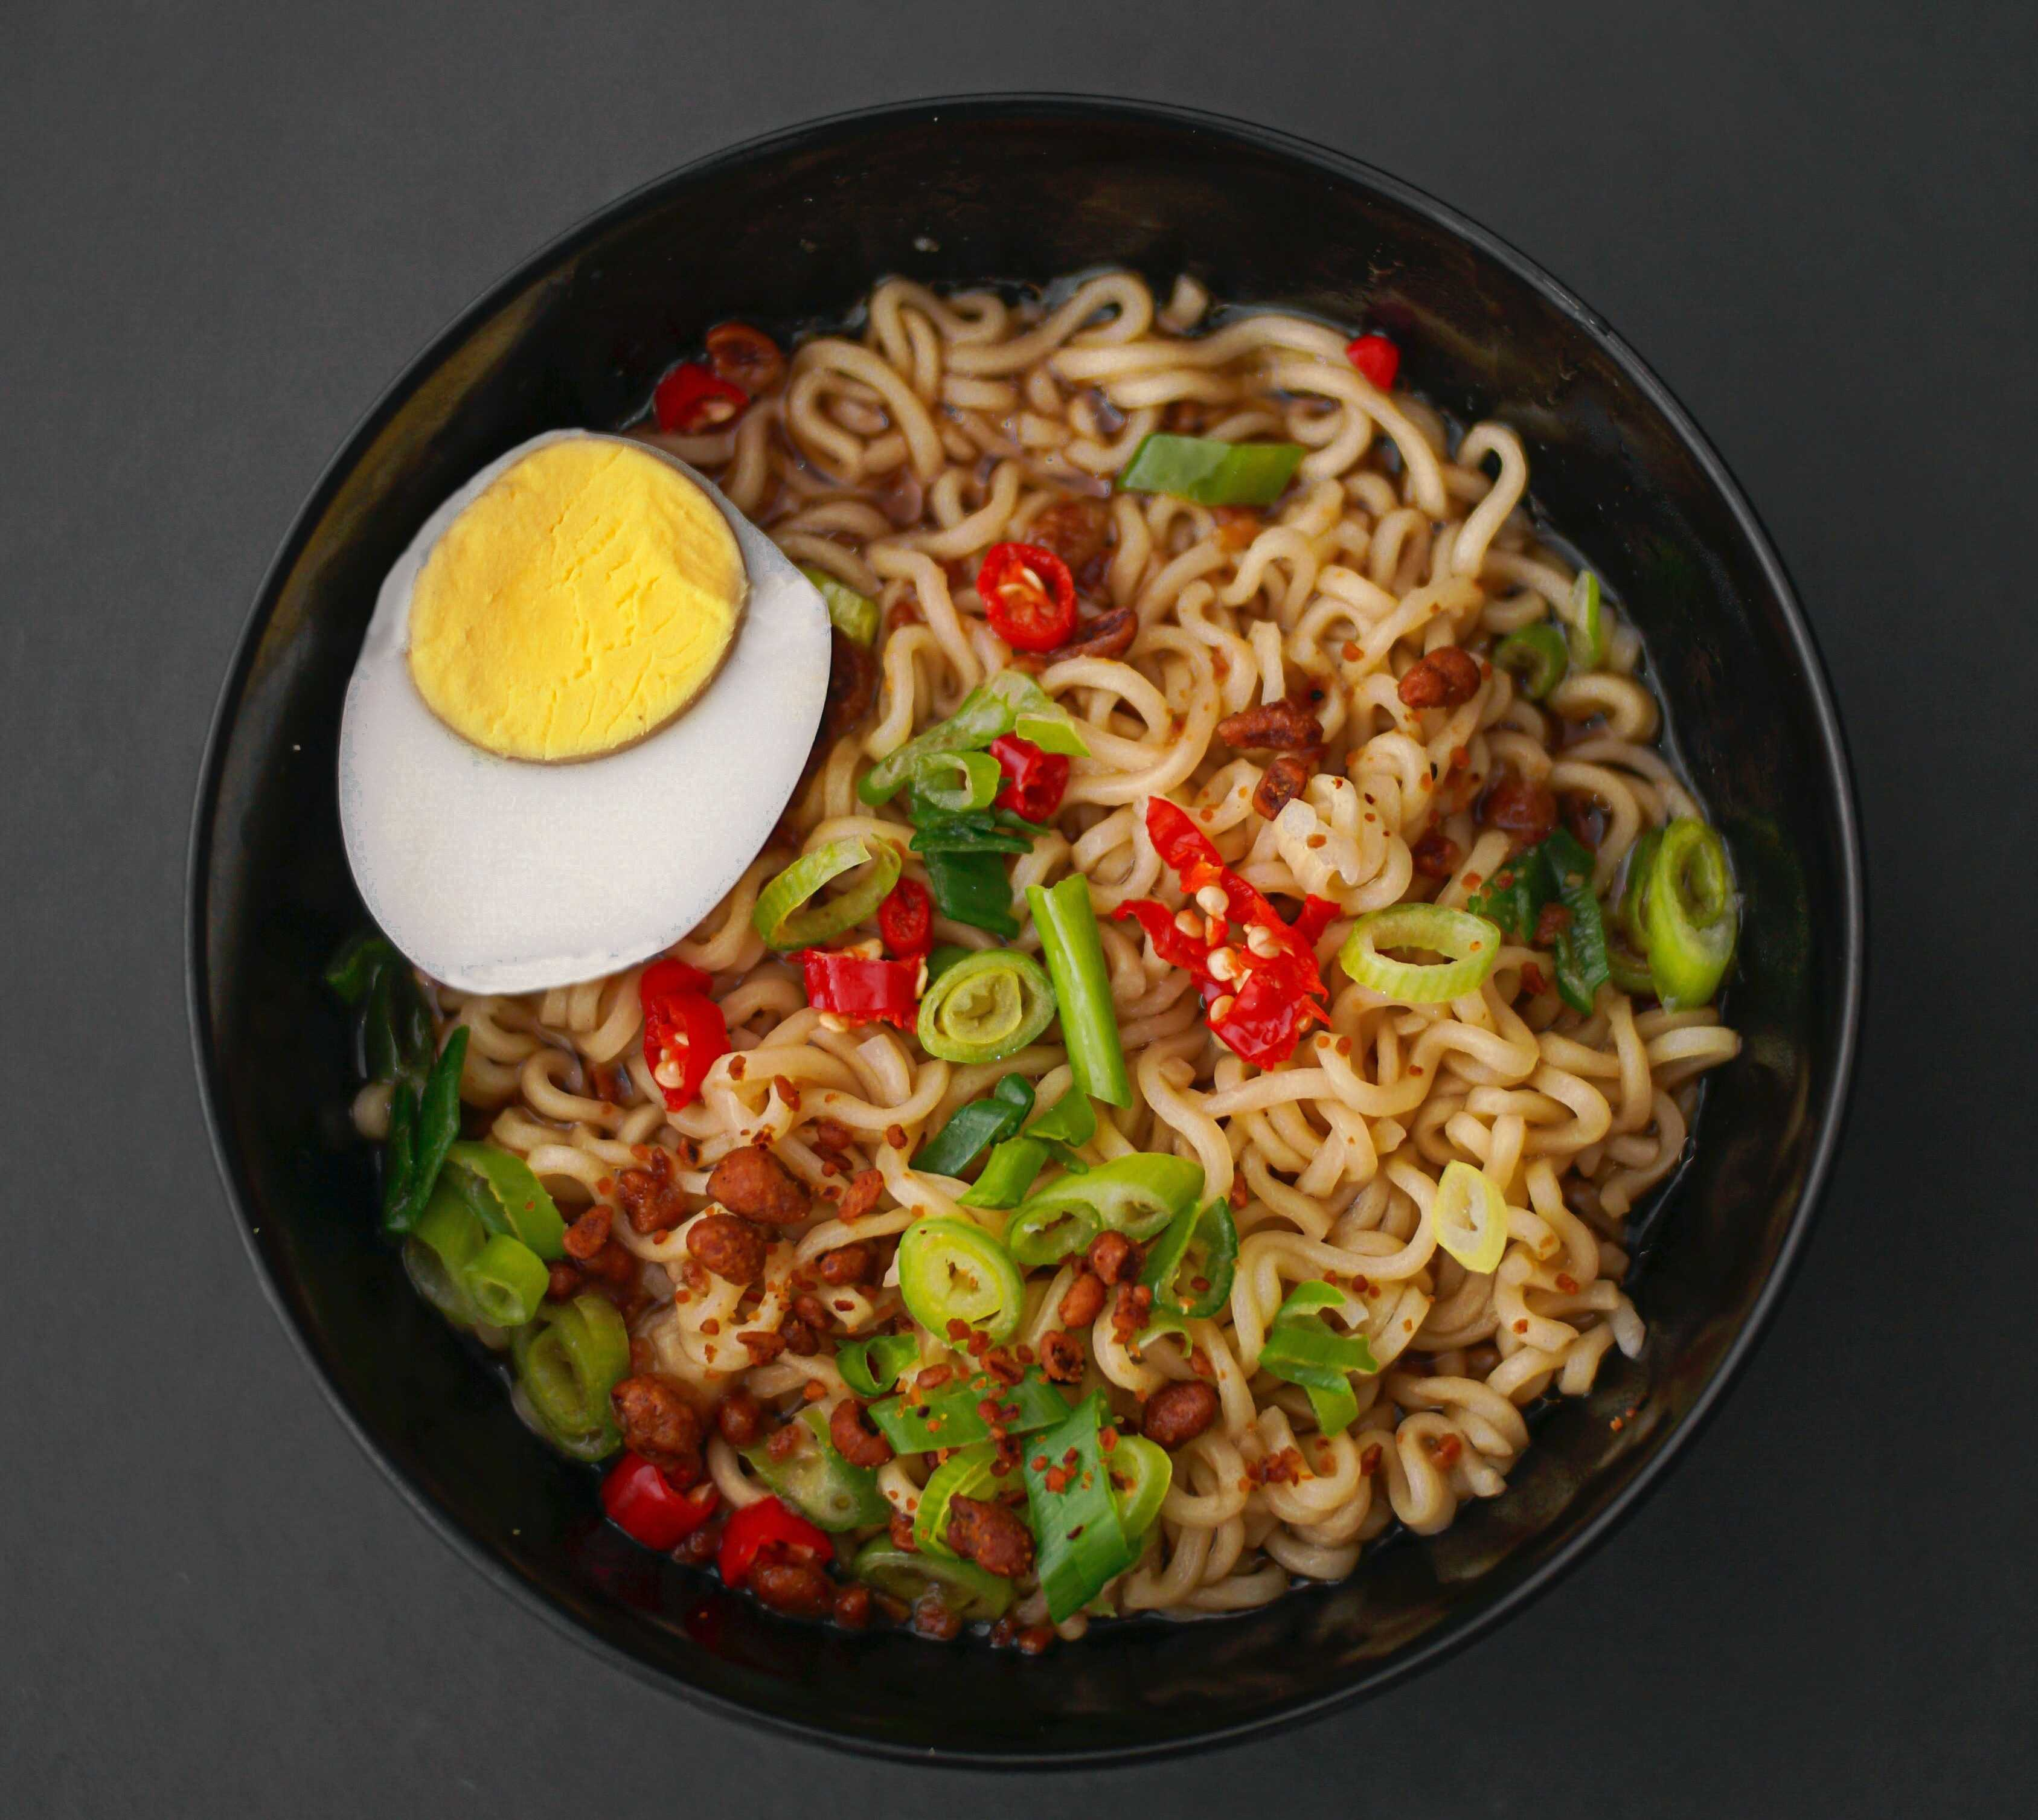 Ways to Make Your Spicy Instant Noodles Taste Even Better